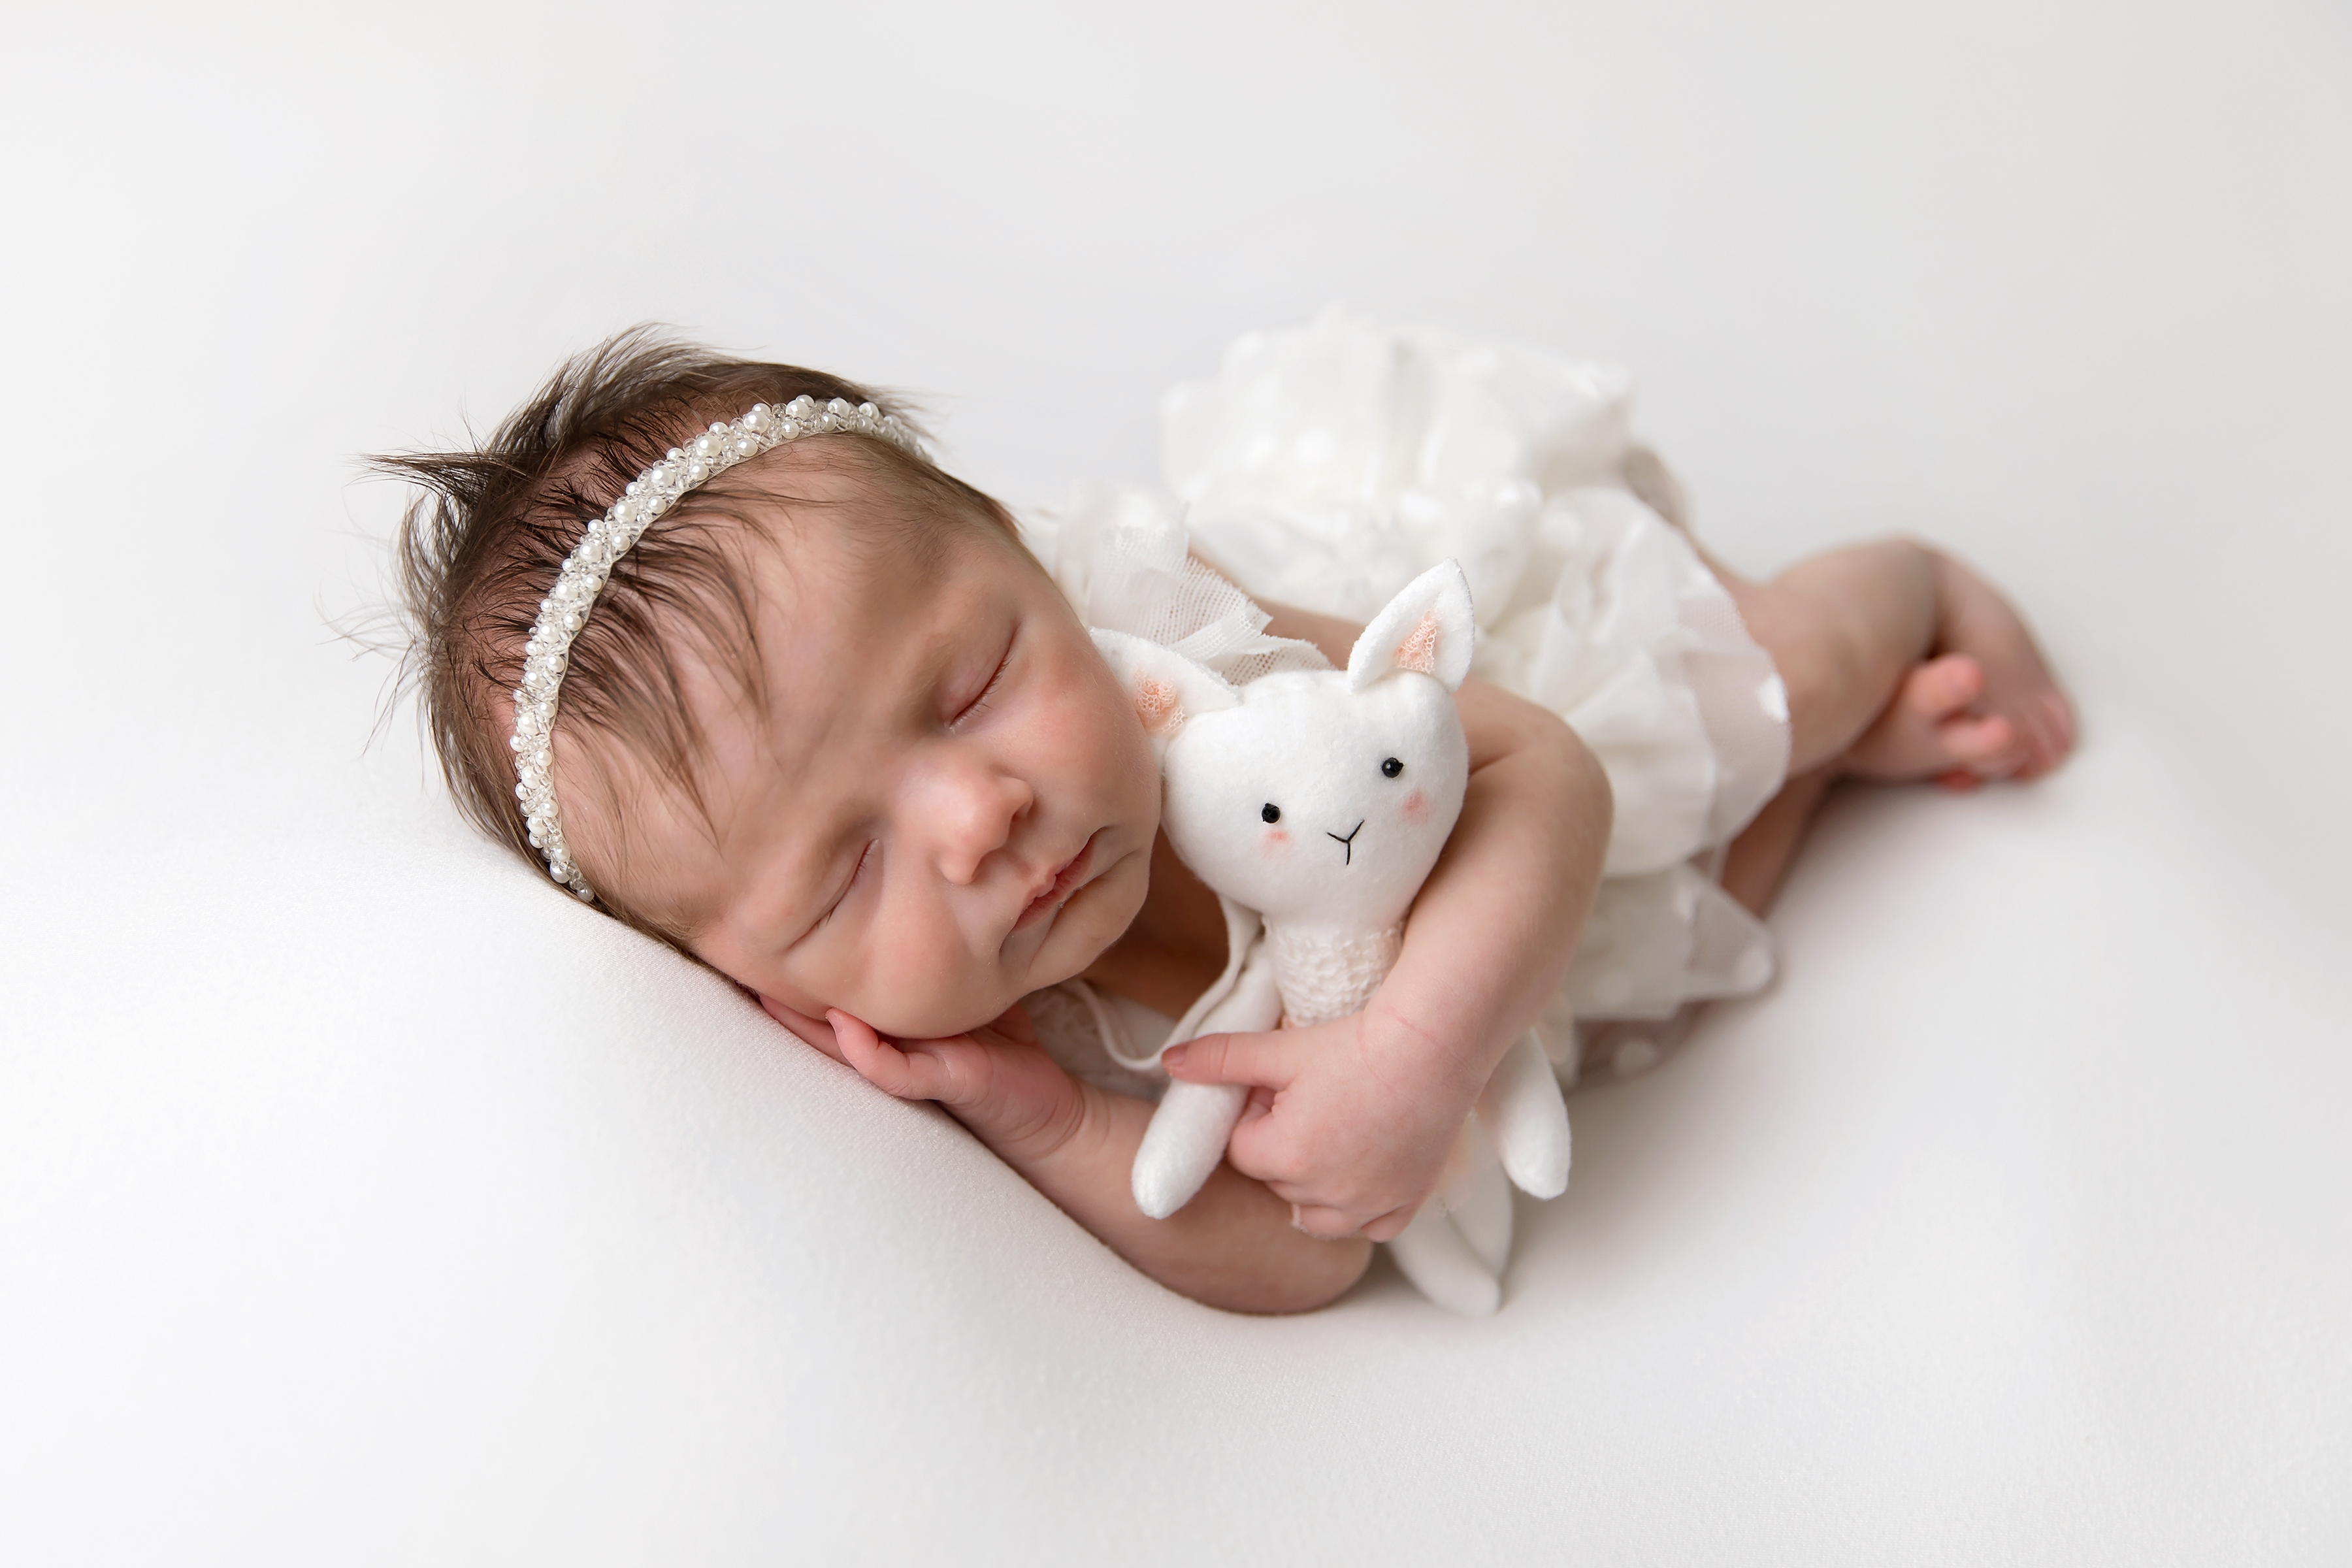 Baby girl photo session ideas